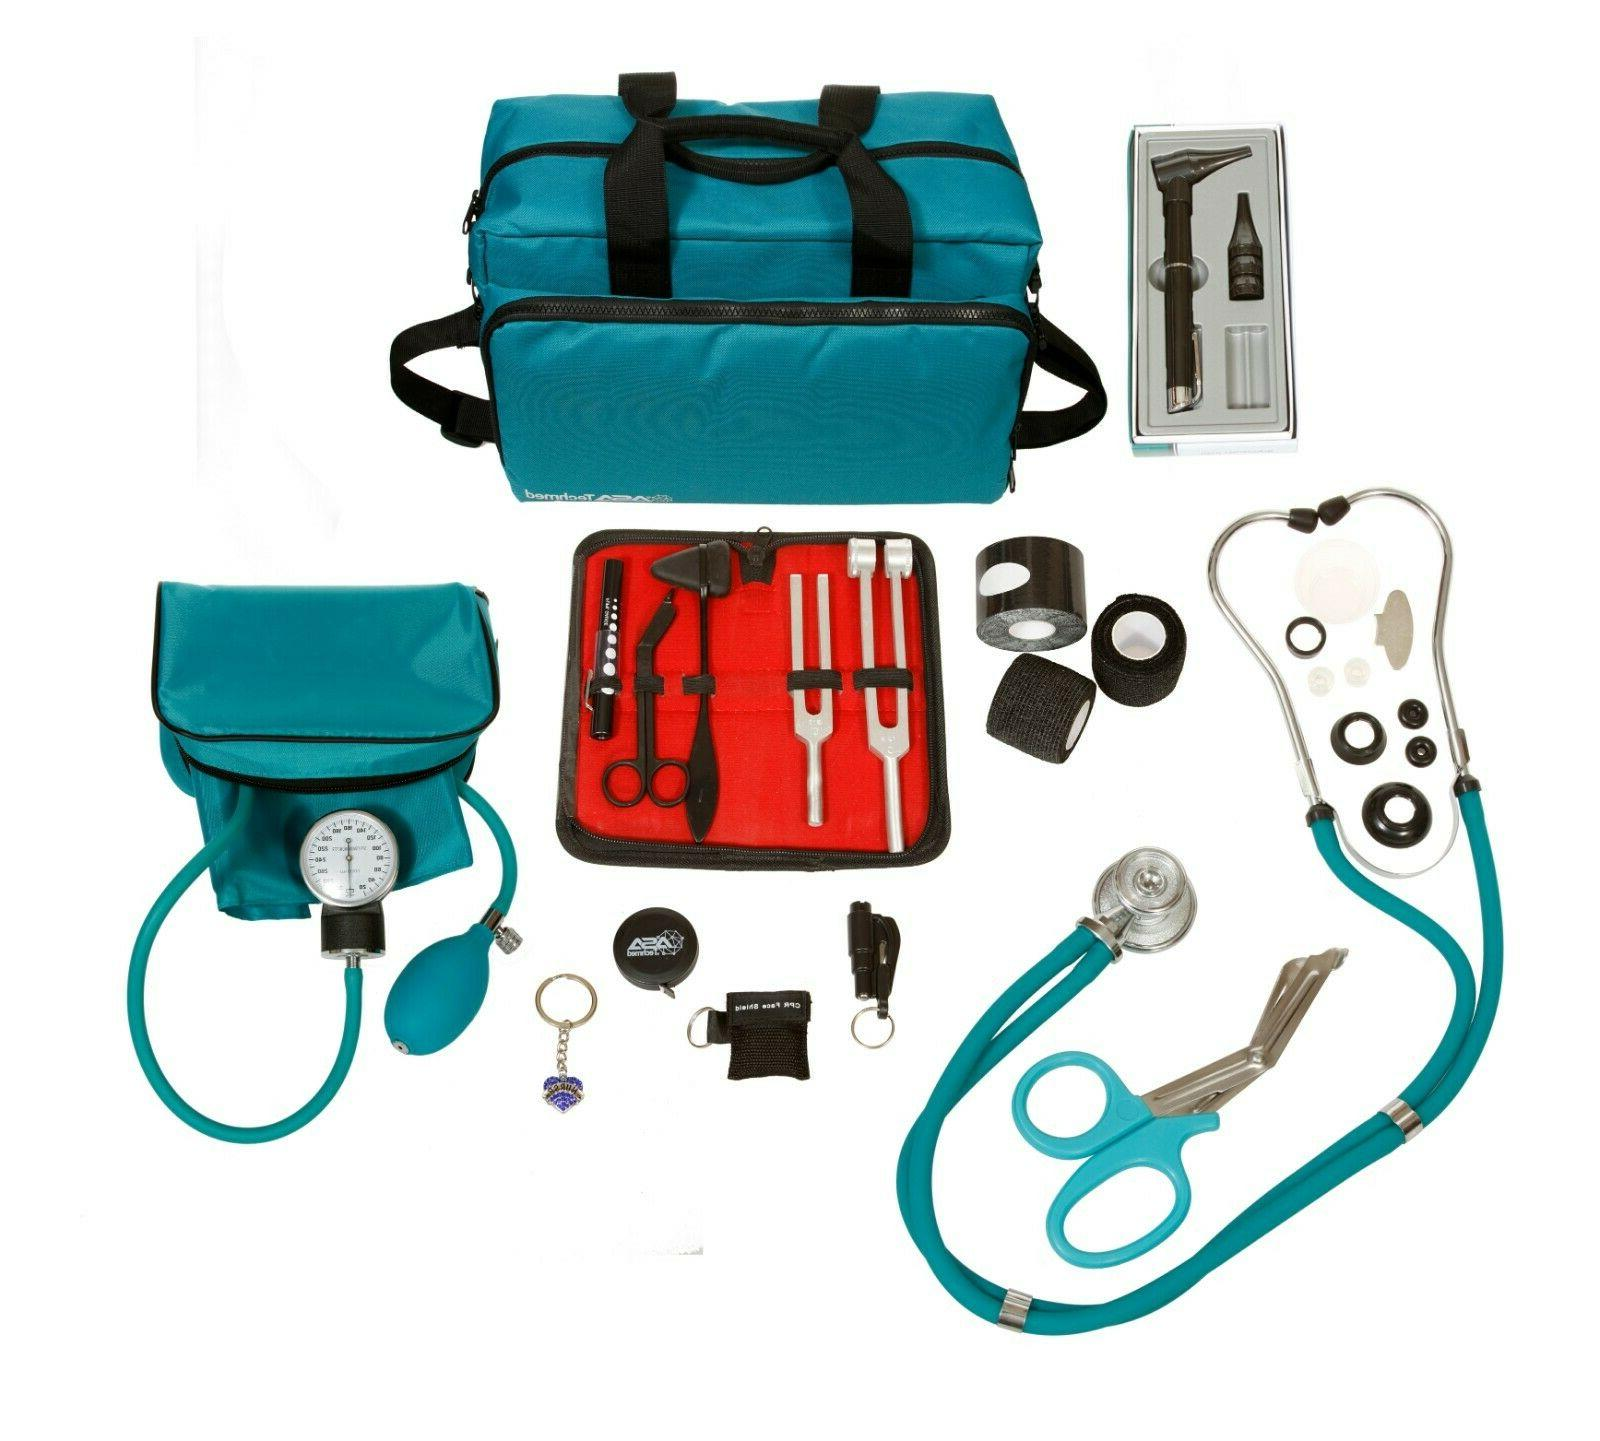 Nurse Kit Stethoscope Blood Pressure Monitor More Pieces Total